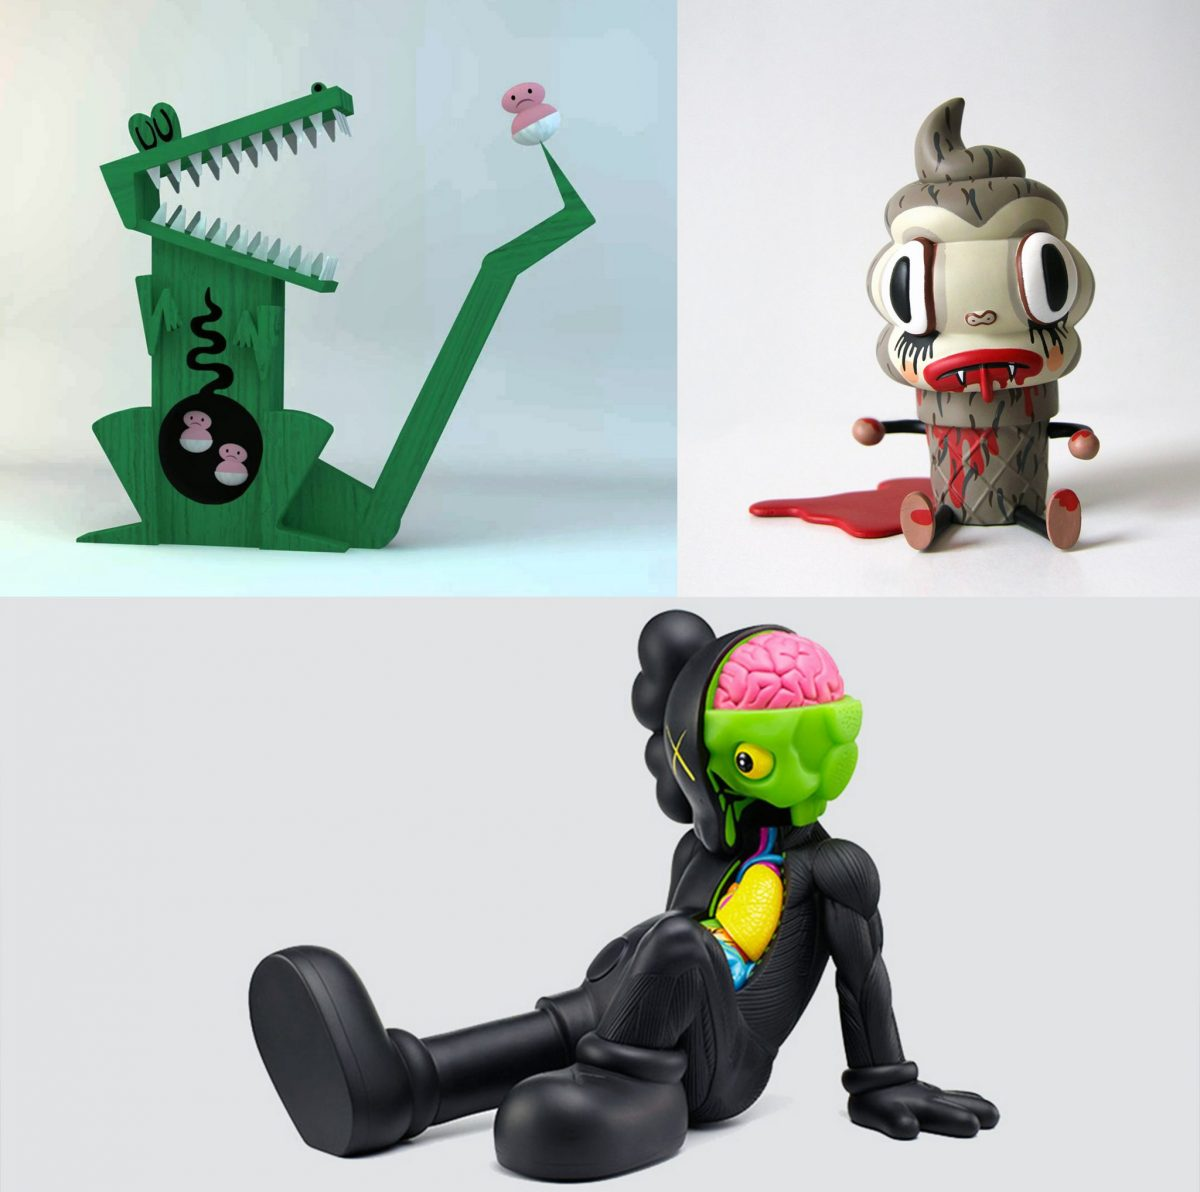 vinyl figurines provided an inspiration for the Beasts of Balance stacking game pieces